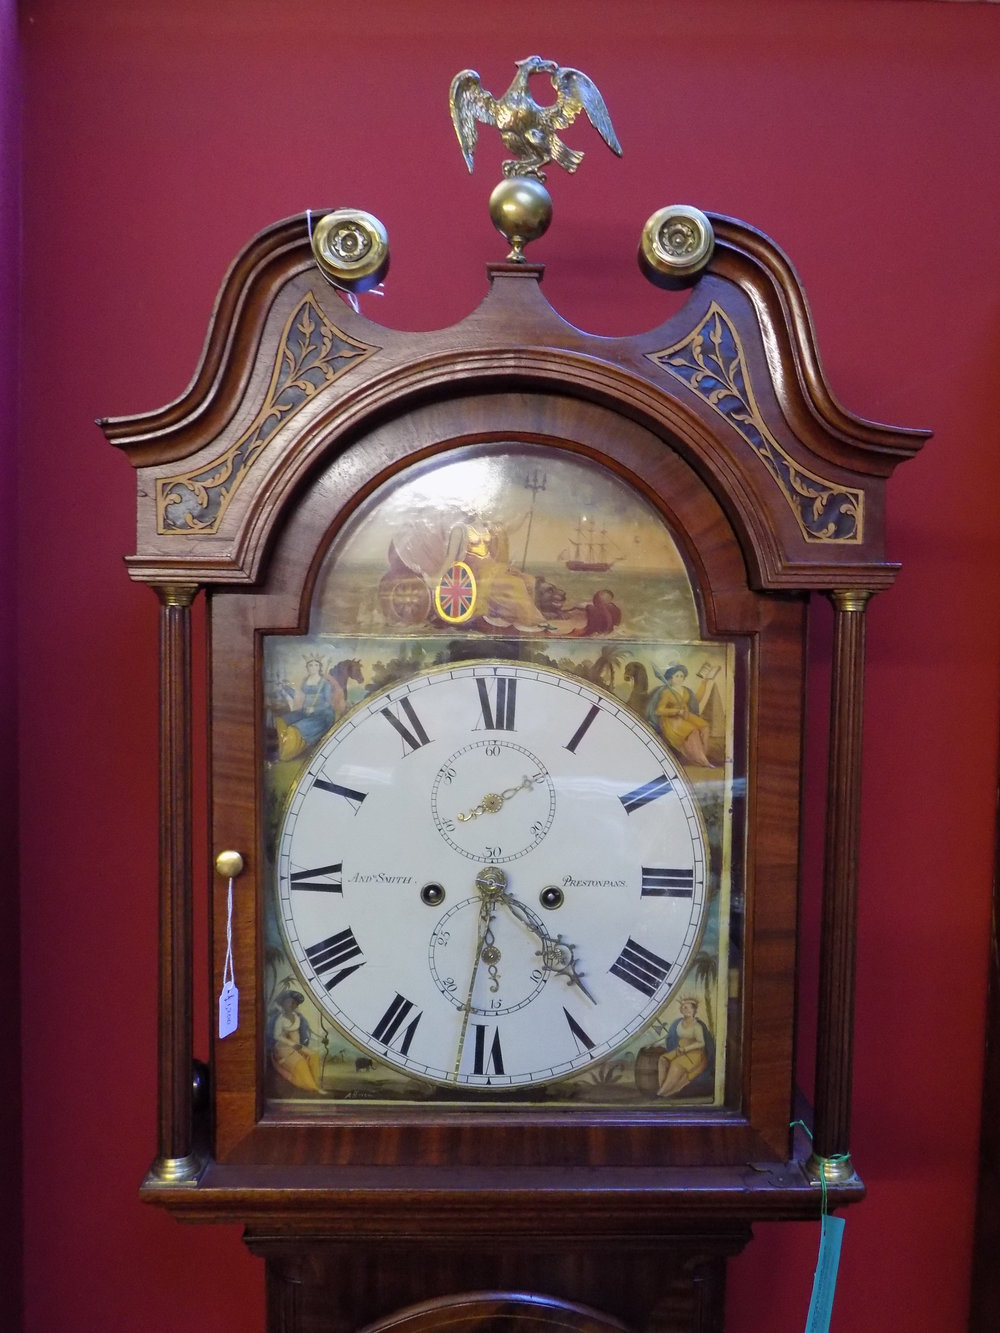 1830 Mahogany longcase clock by Andrew smith of Prestonpans Edinburgh £1200